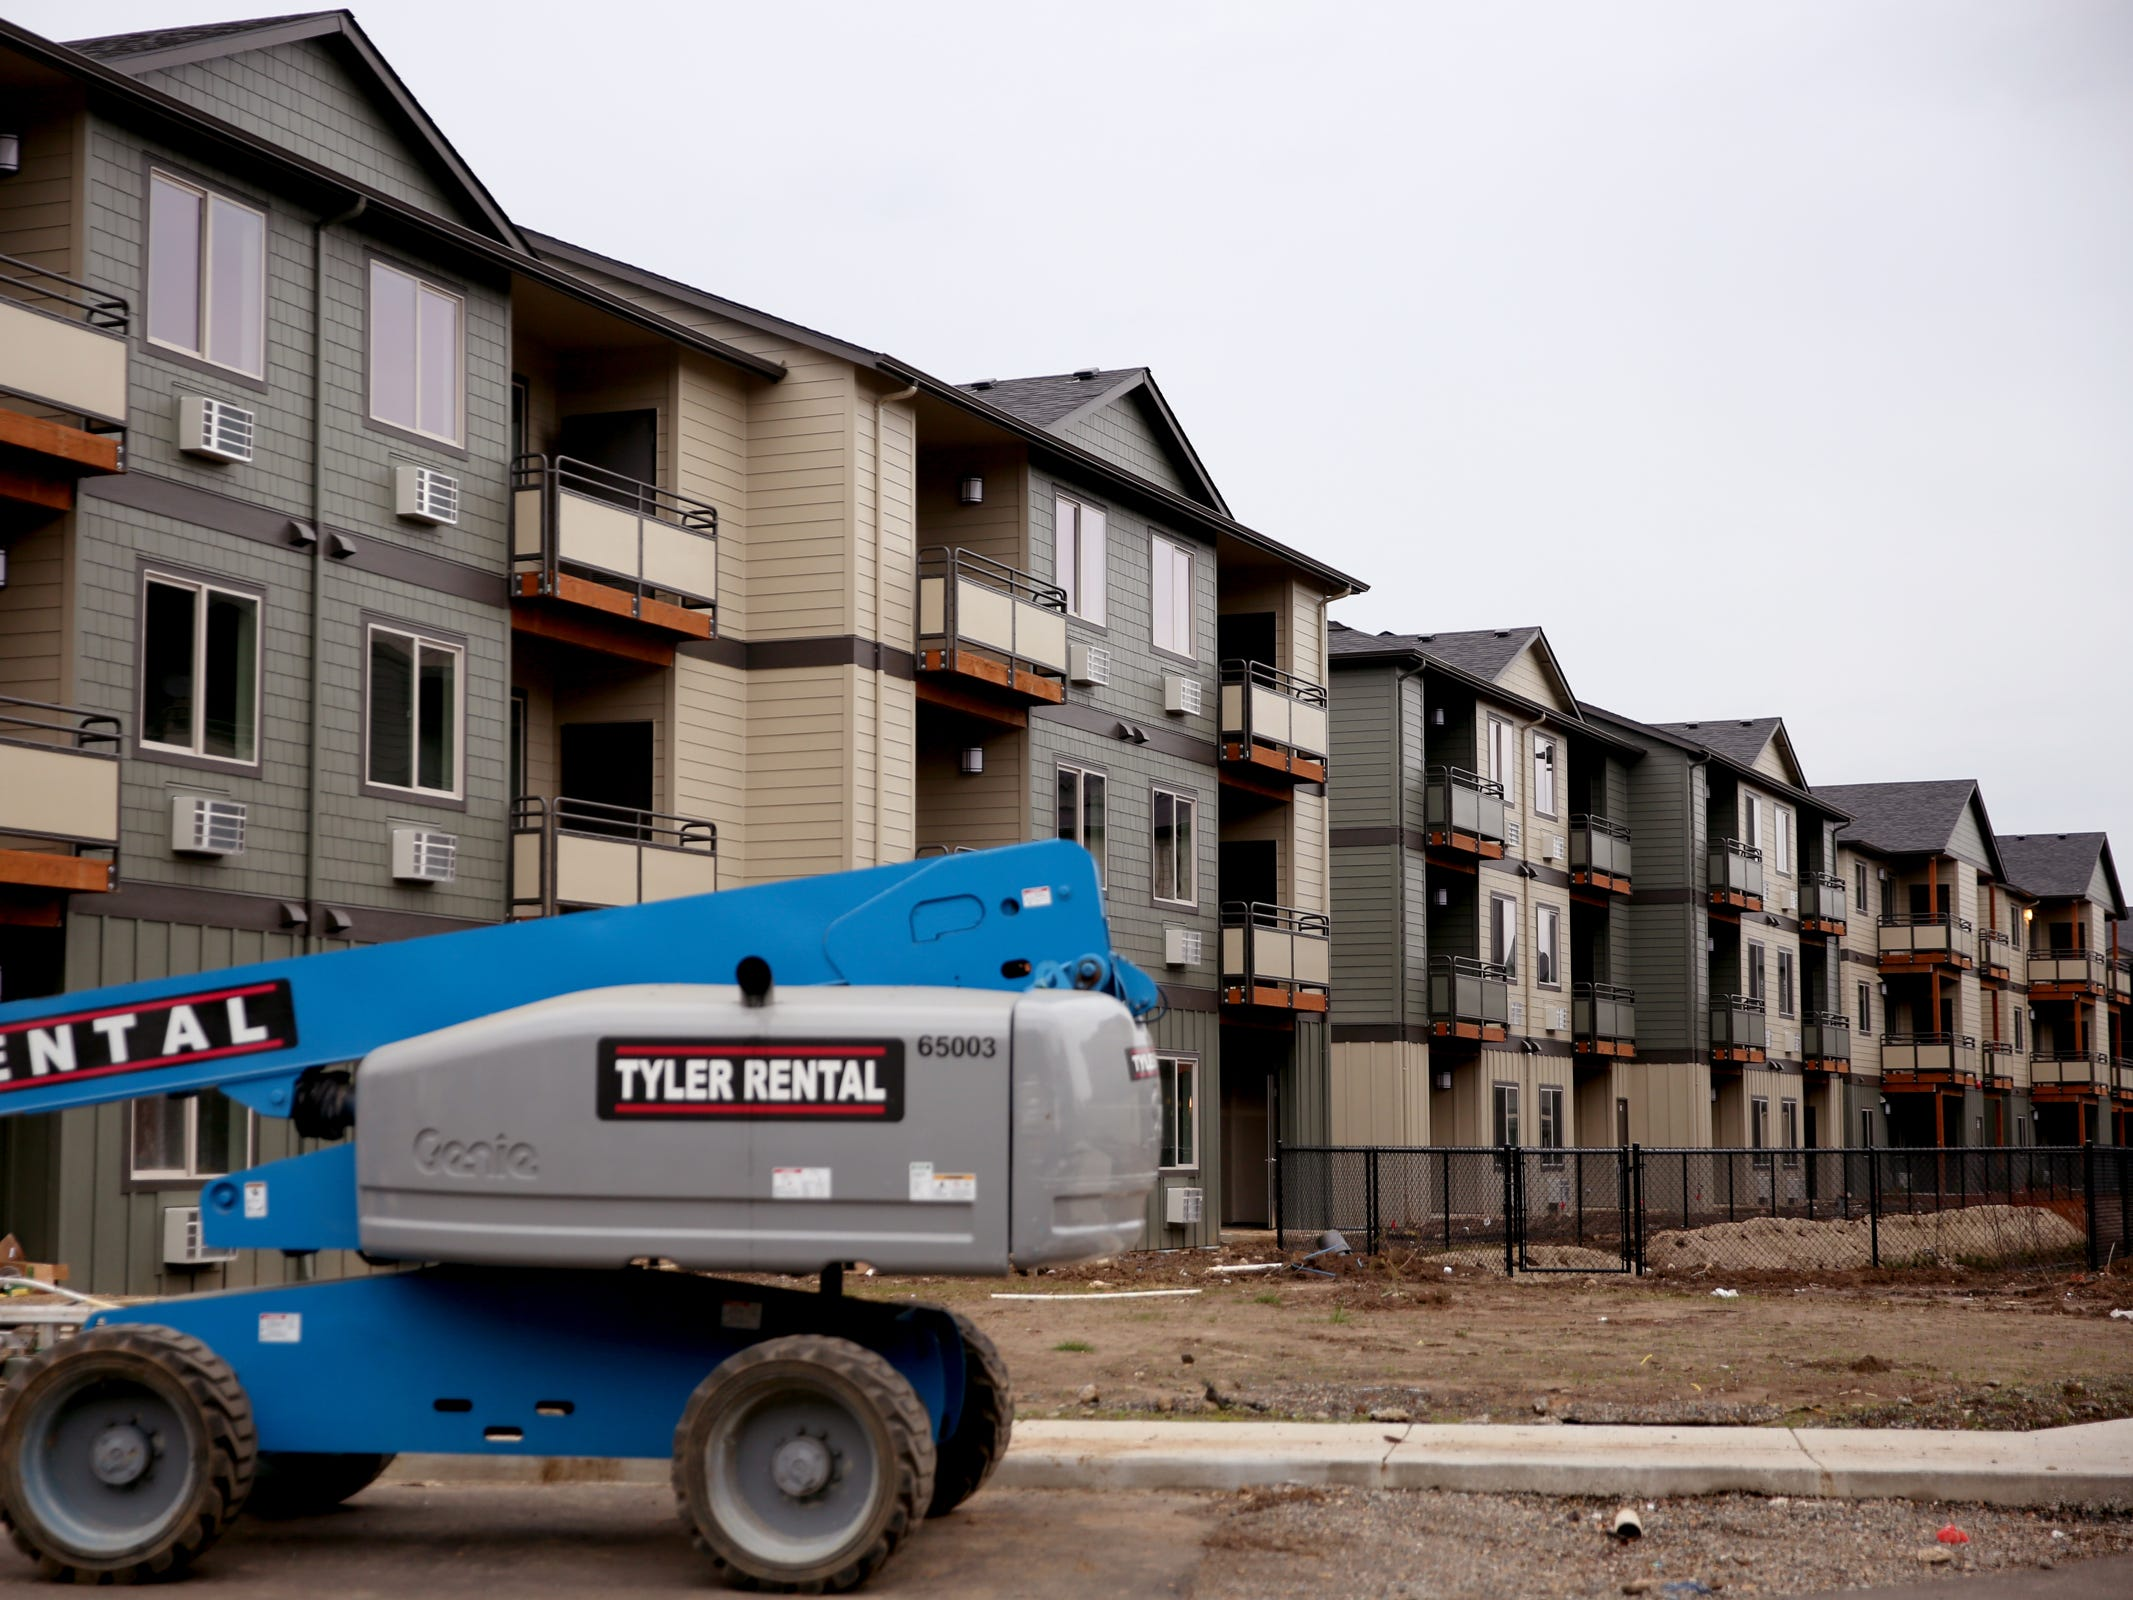 The Cornerstone Apartments in Salem on Wednesday, Jan. 16, 2019. The state is looking to reduce the energy burden for low-income Oregonians, including tenants at Cornerstone, who must live at or less than 60 percent of the area's median household income.